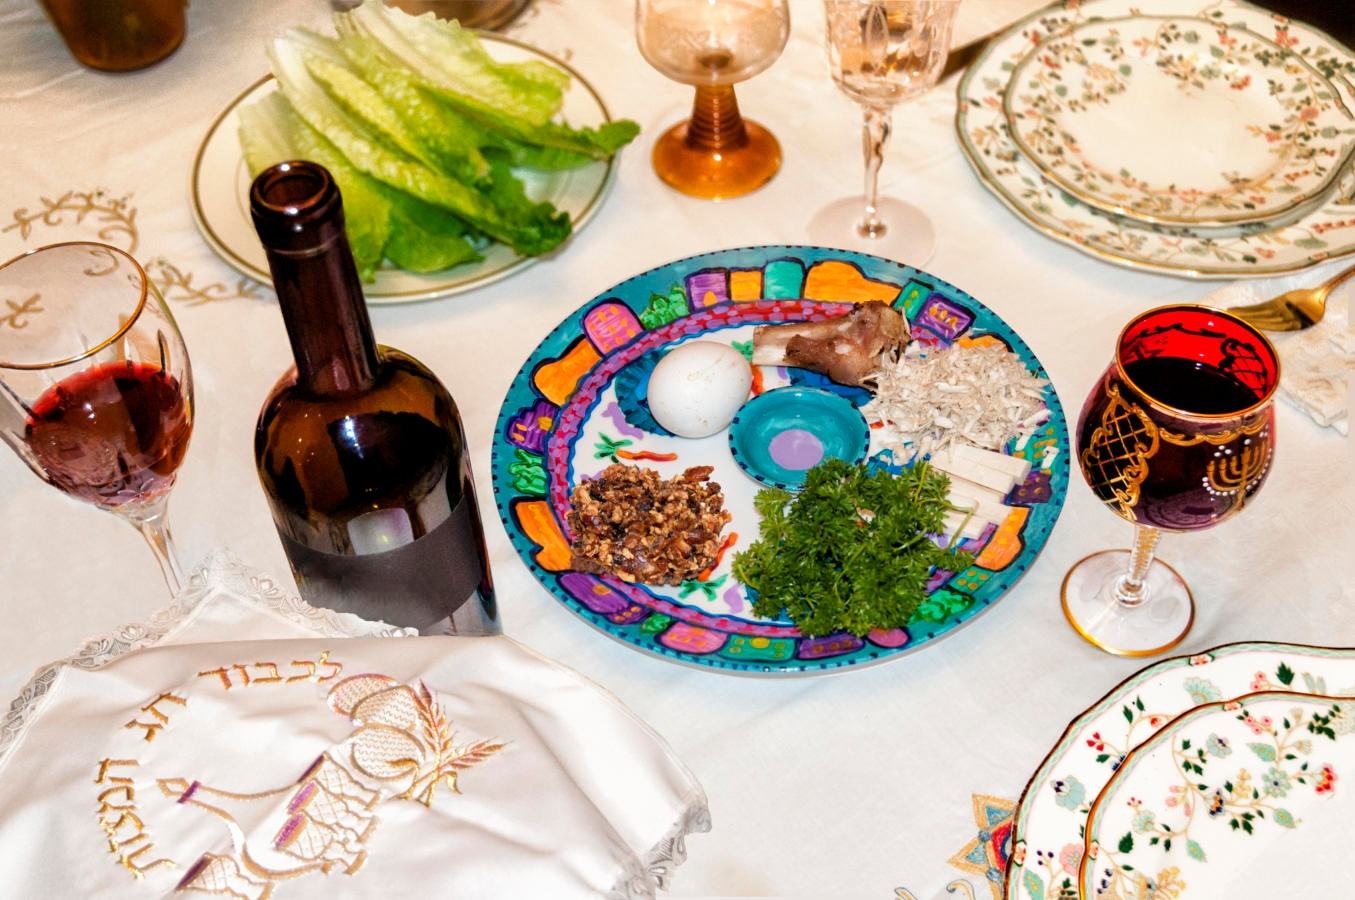 How to Participate in a Passover Seder advise